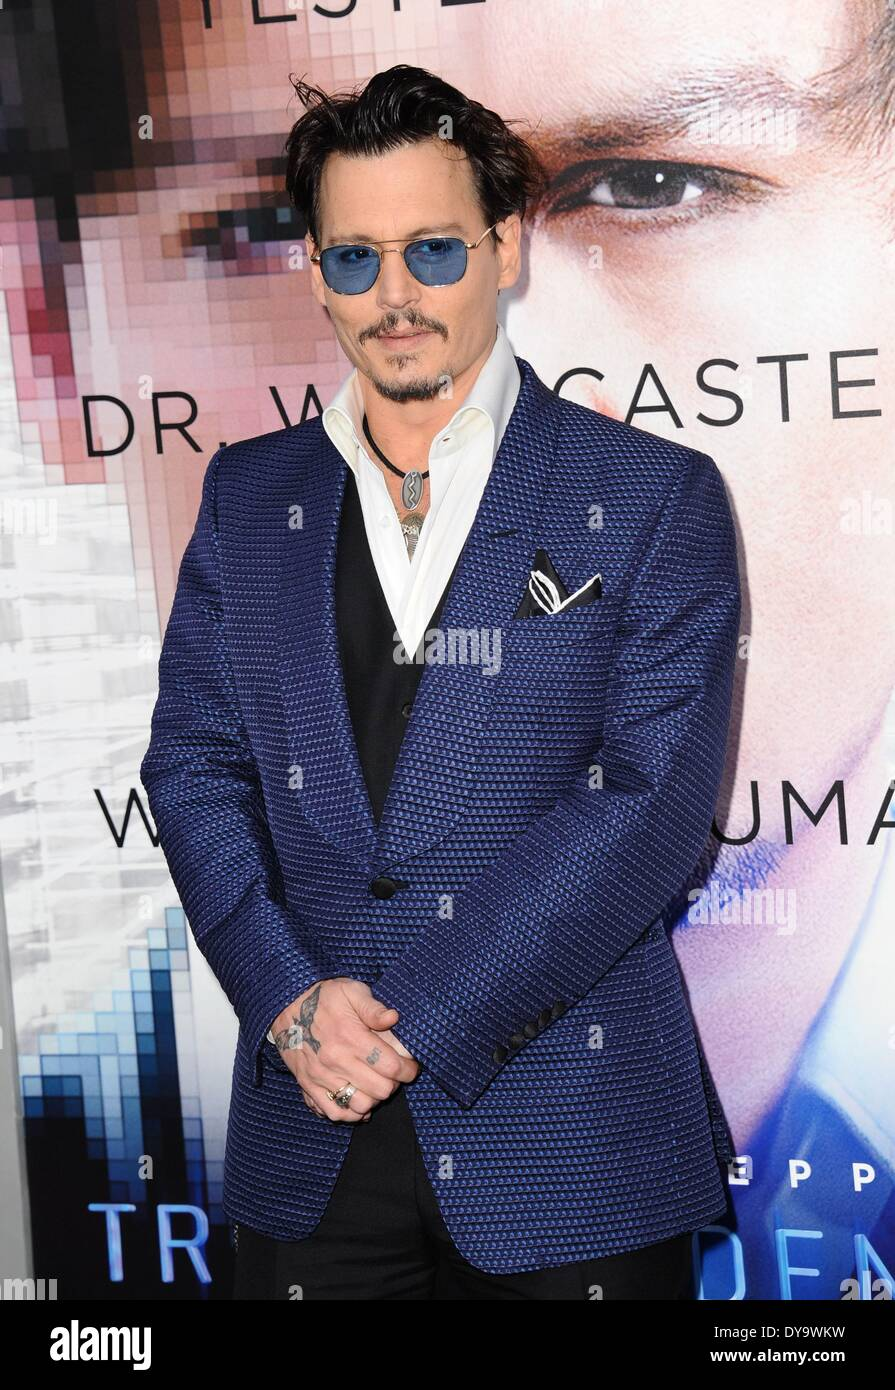 Los Angeles, CA, USA. 10th Apr, 2014. Johnny Depp at arrivals for TRANSCENDENCE Premiere, The Regency Village Theatre, Los Angeles, CA April 10, 2014. Credit:  Dee Cercone/Everett Collection/Alamy Live News - Stock Image